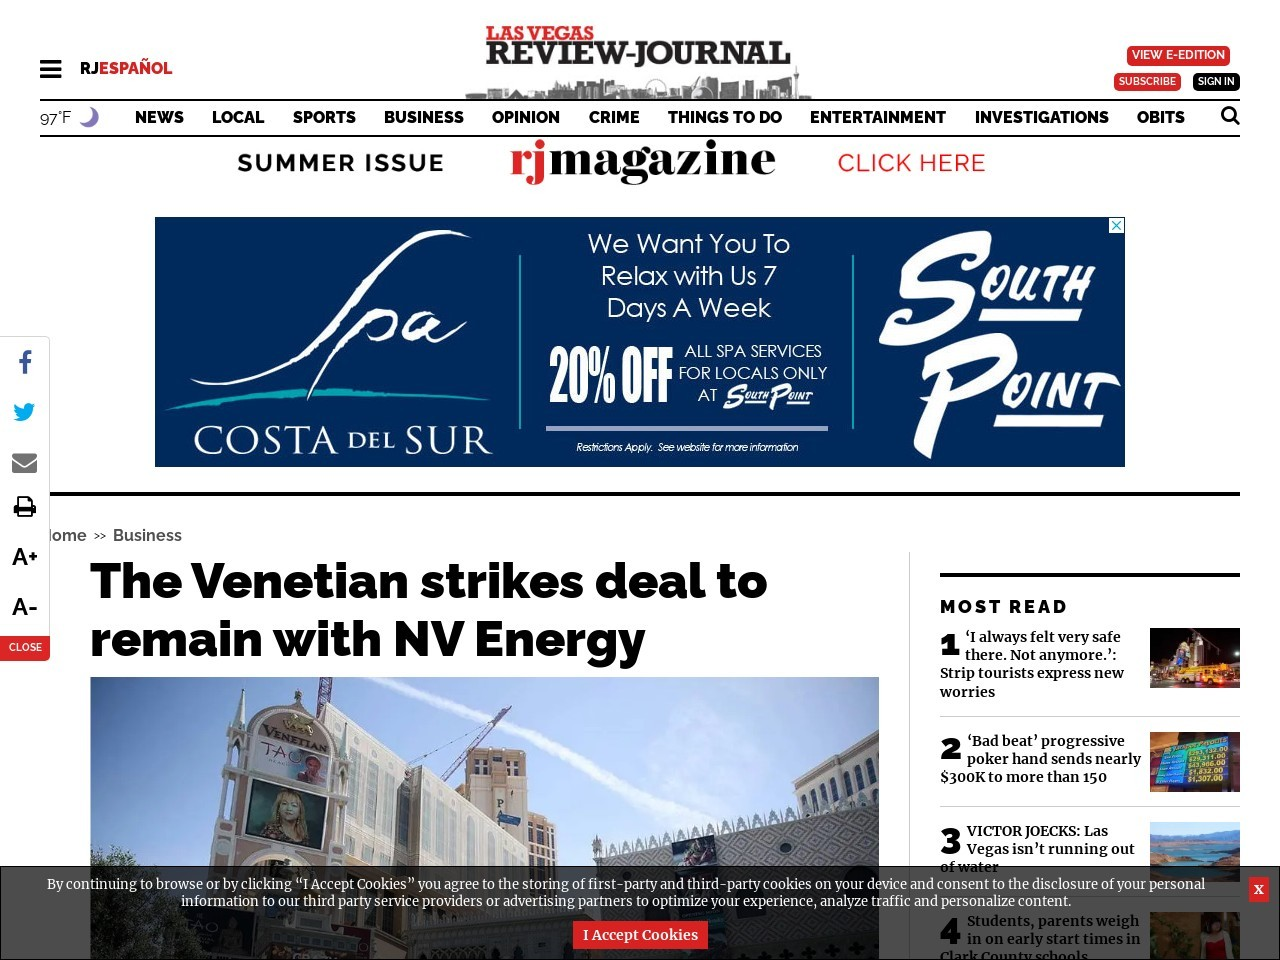 The Venetian strikes deal to remain with NV Energy